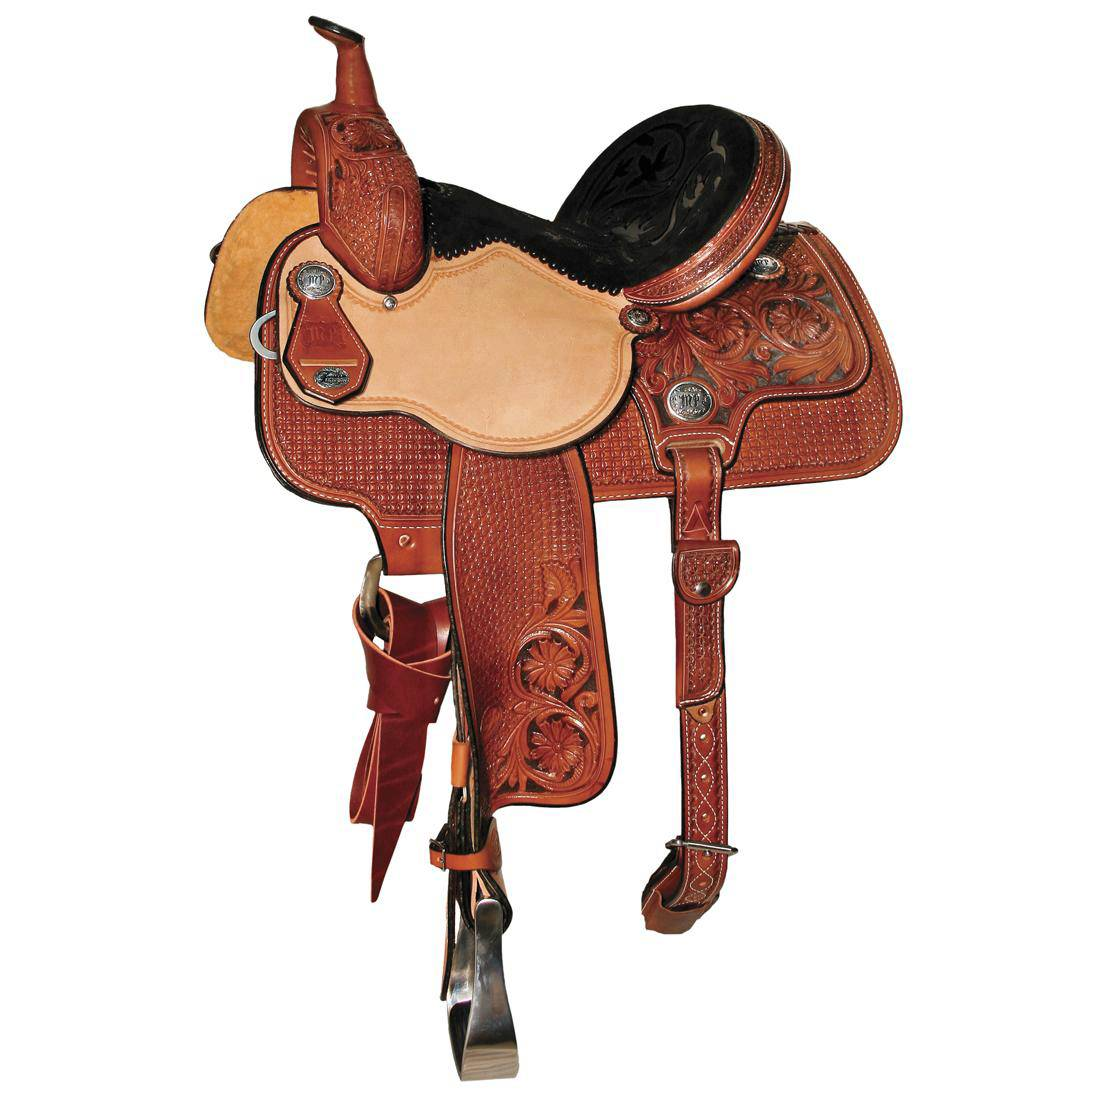 Reinsman 4262 Molly Powell Wood Tree Barrel Racer Saddle